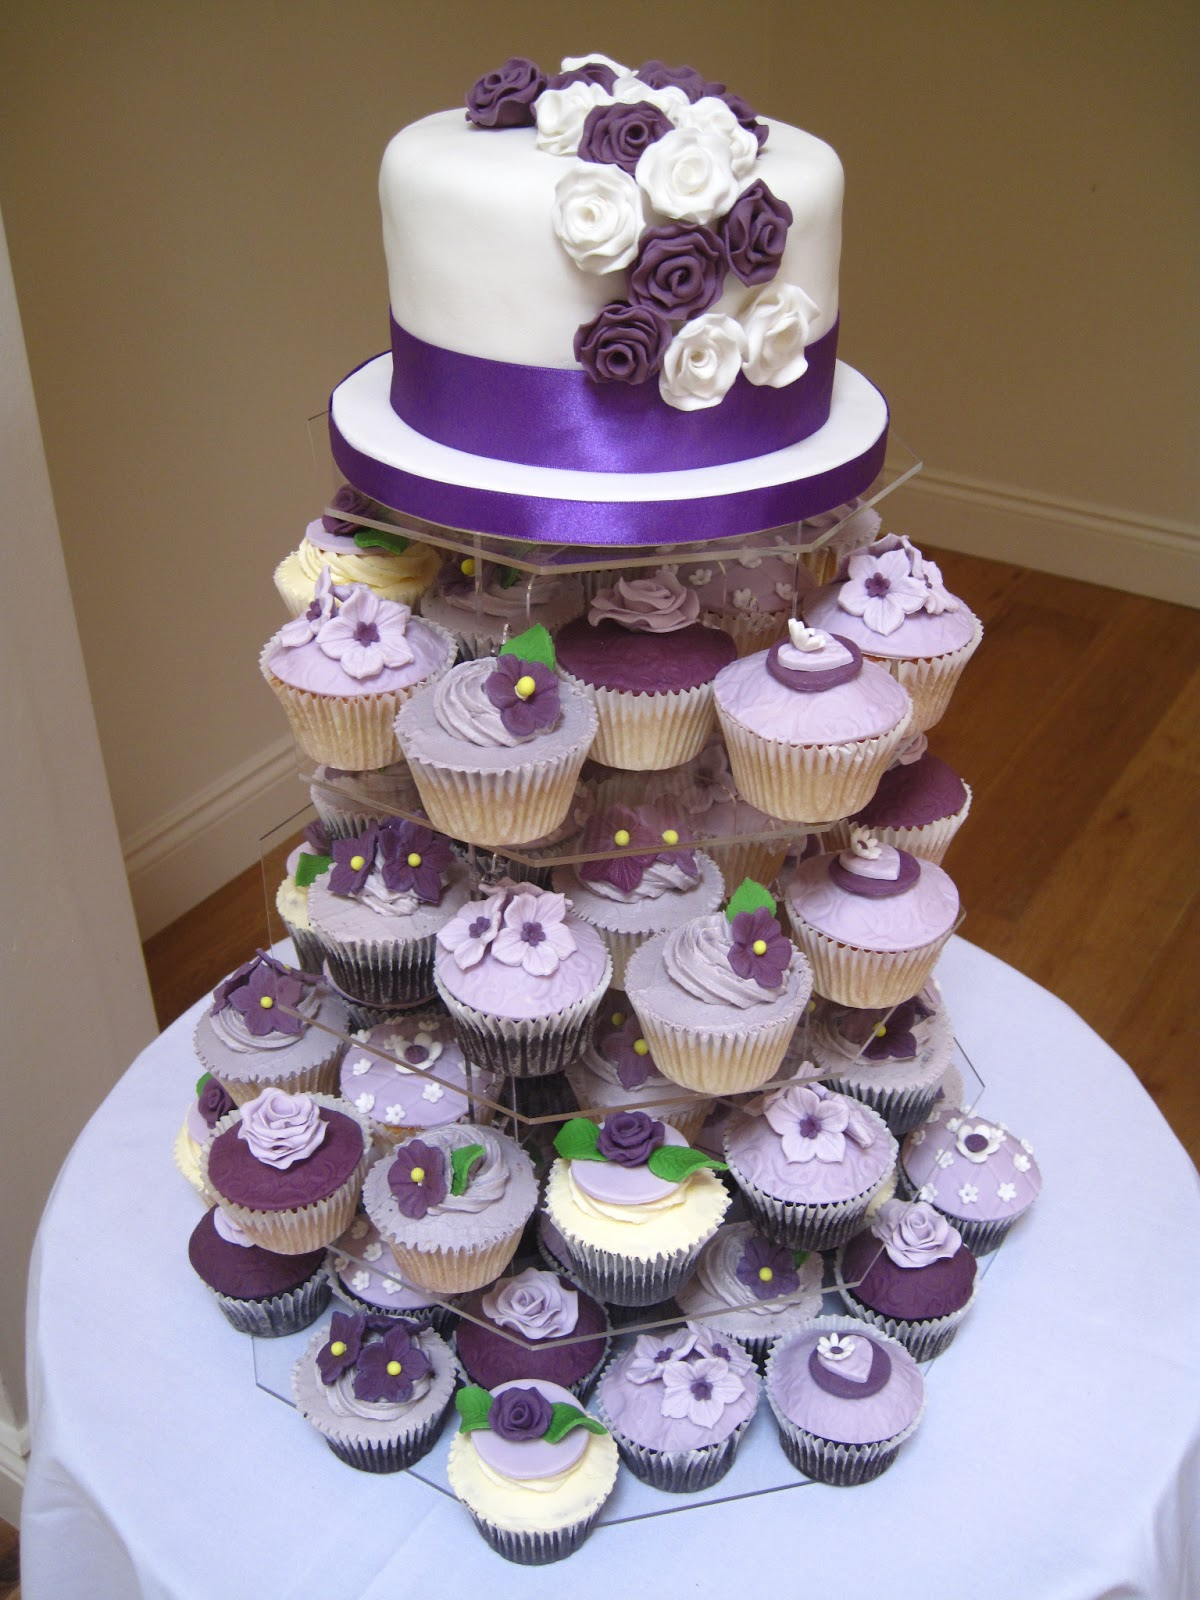 TrueStar Cupcakes Lilac wedding delight